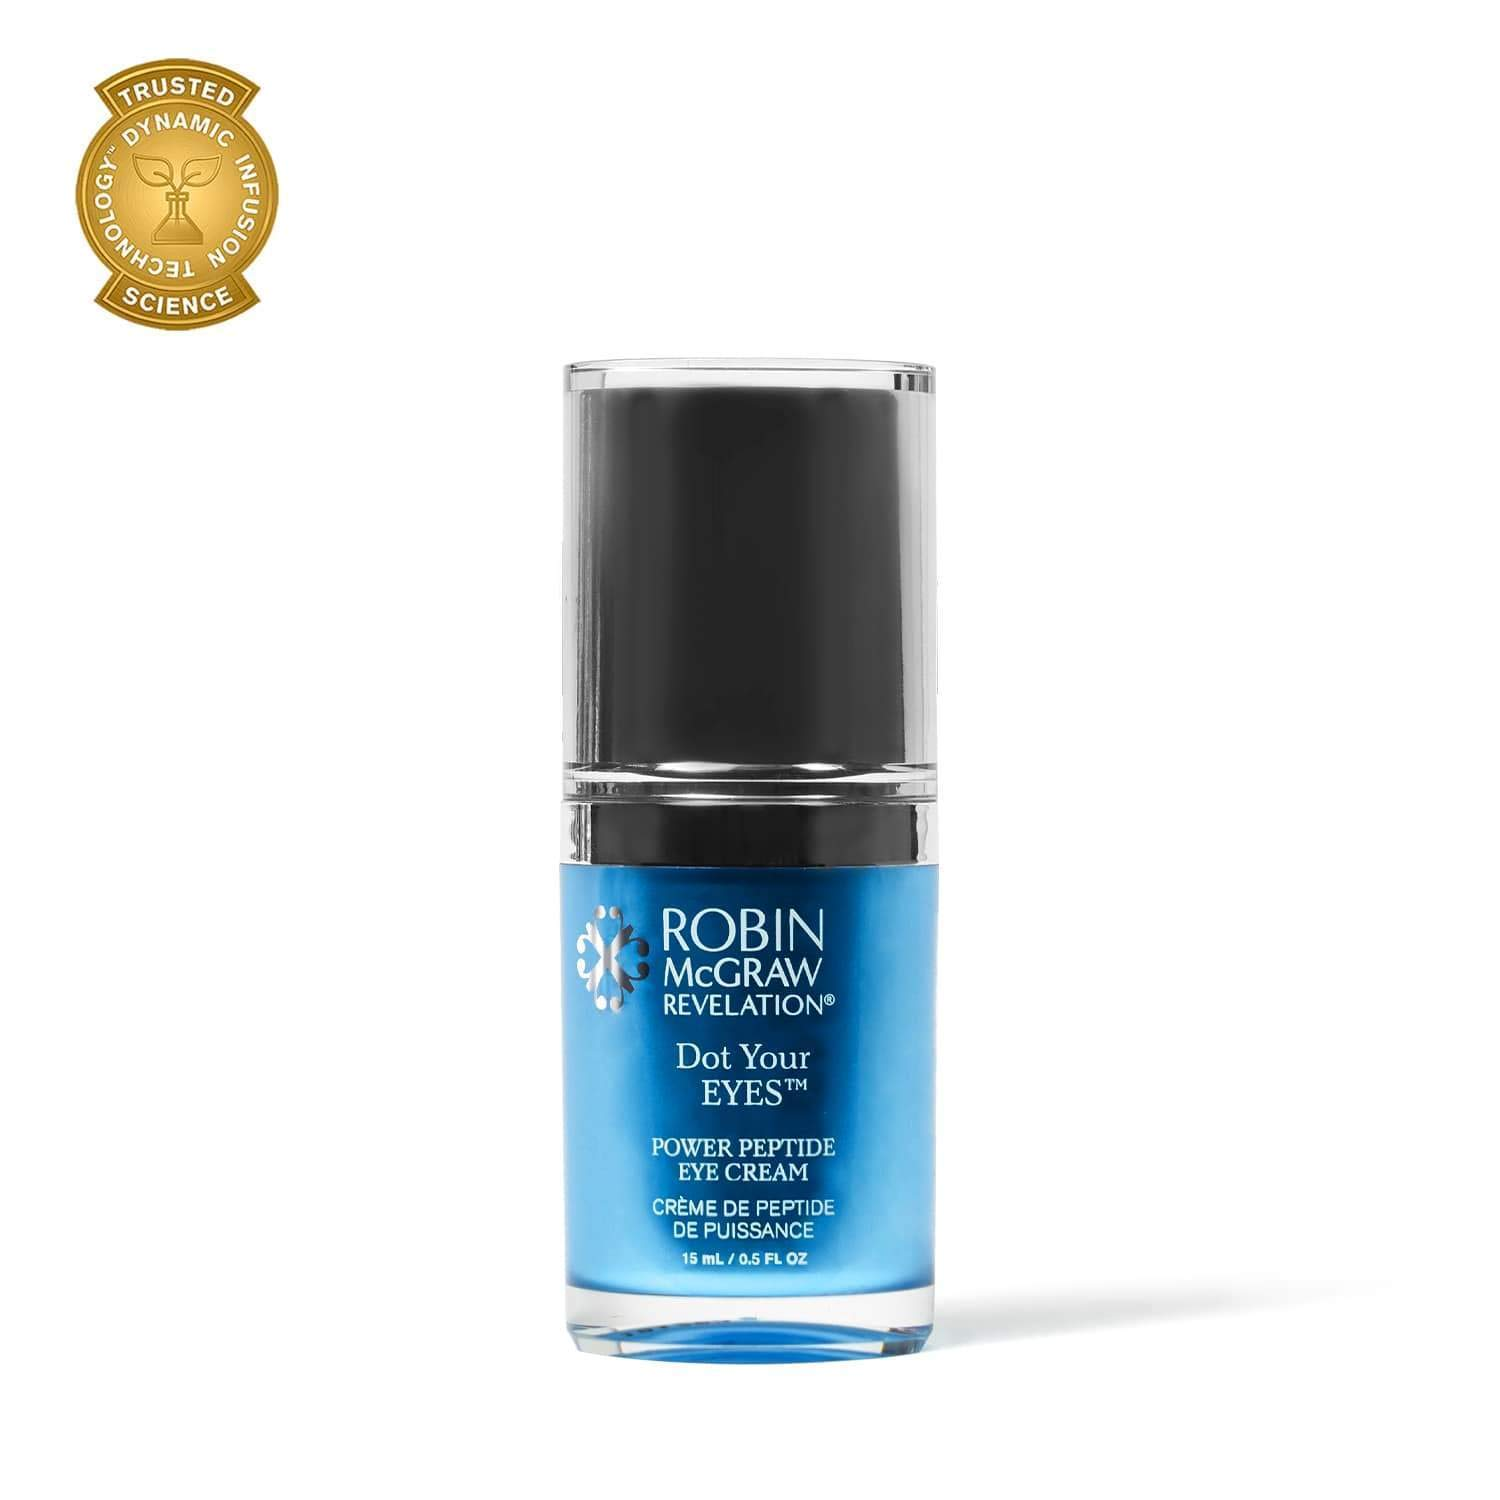 Dot Your EYES Eye Cream with Peptides by Robin McGraw Revelation | Anti-Aging Moisturizer